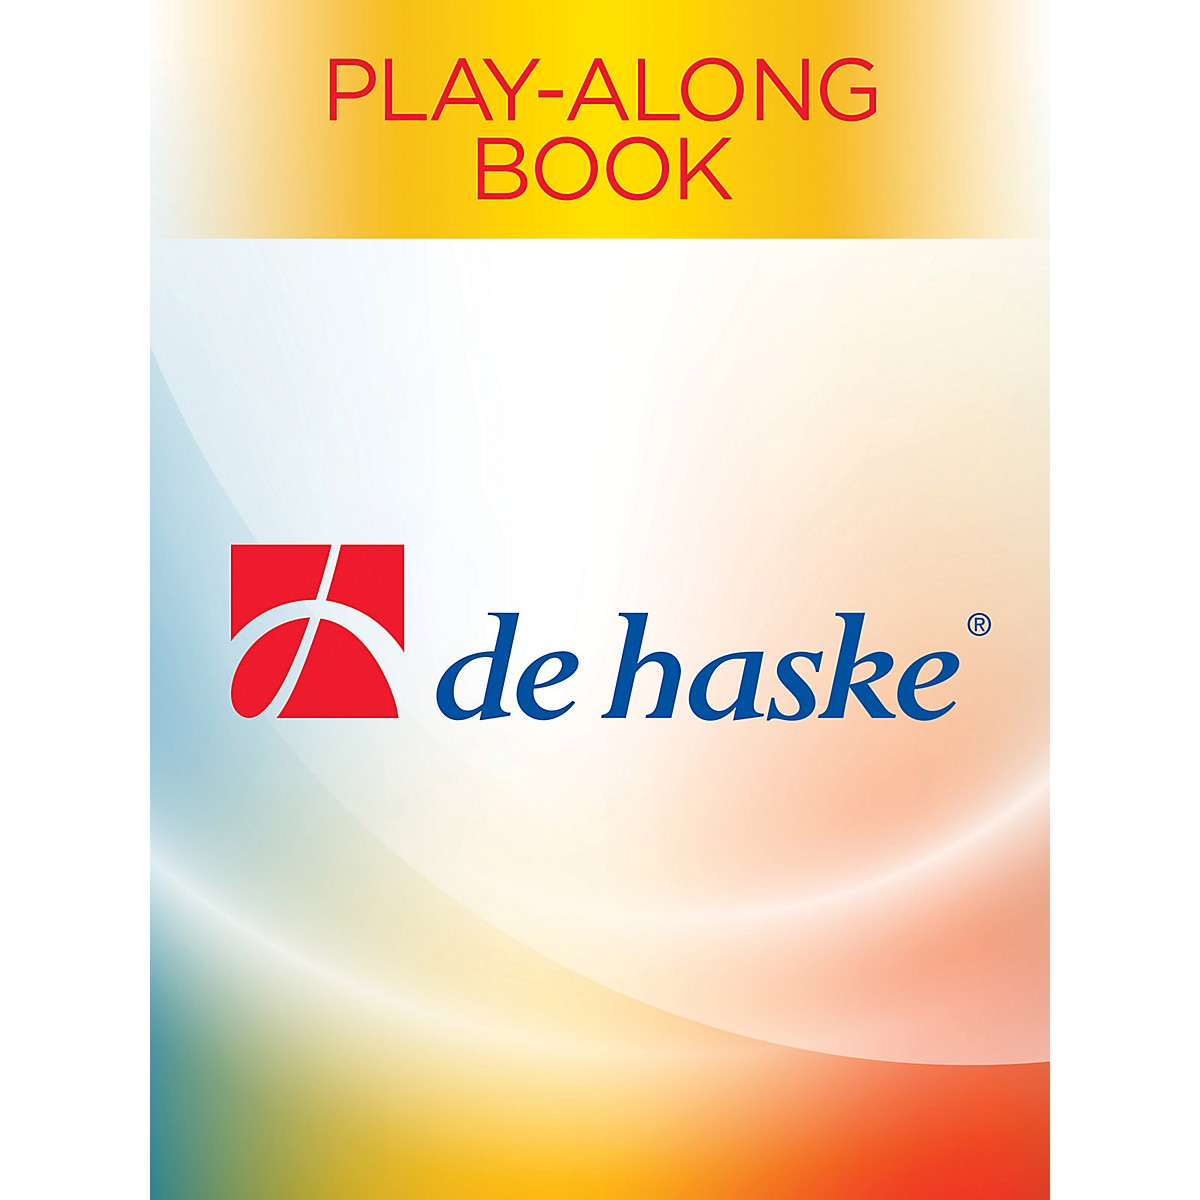 Hal Leonard Love Song (Tuba (B.C.) and Piano) De Haske Play-Along Book Series Composed by Satoshi Yagisawa